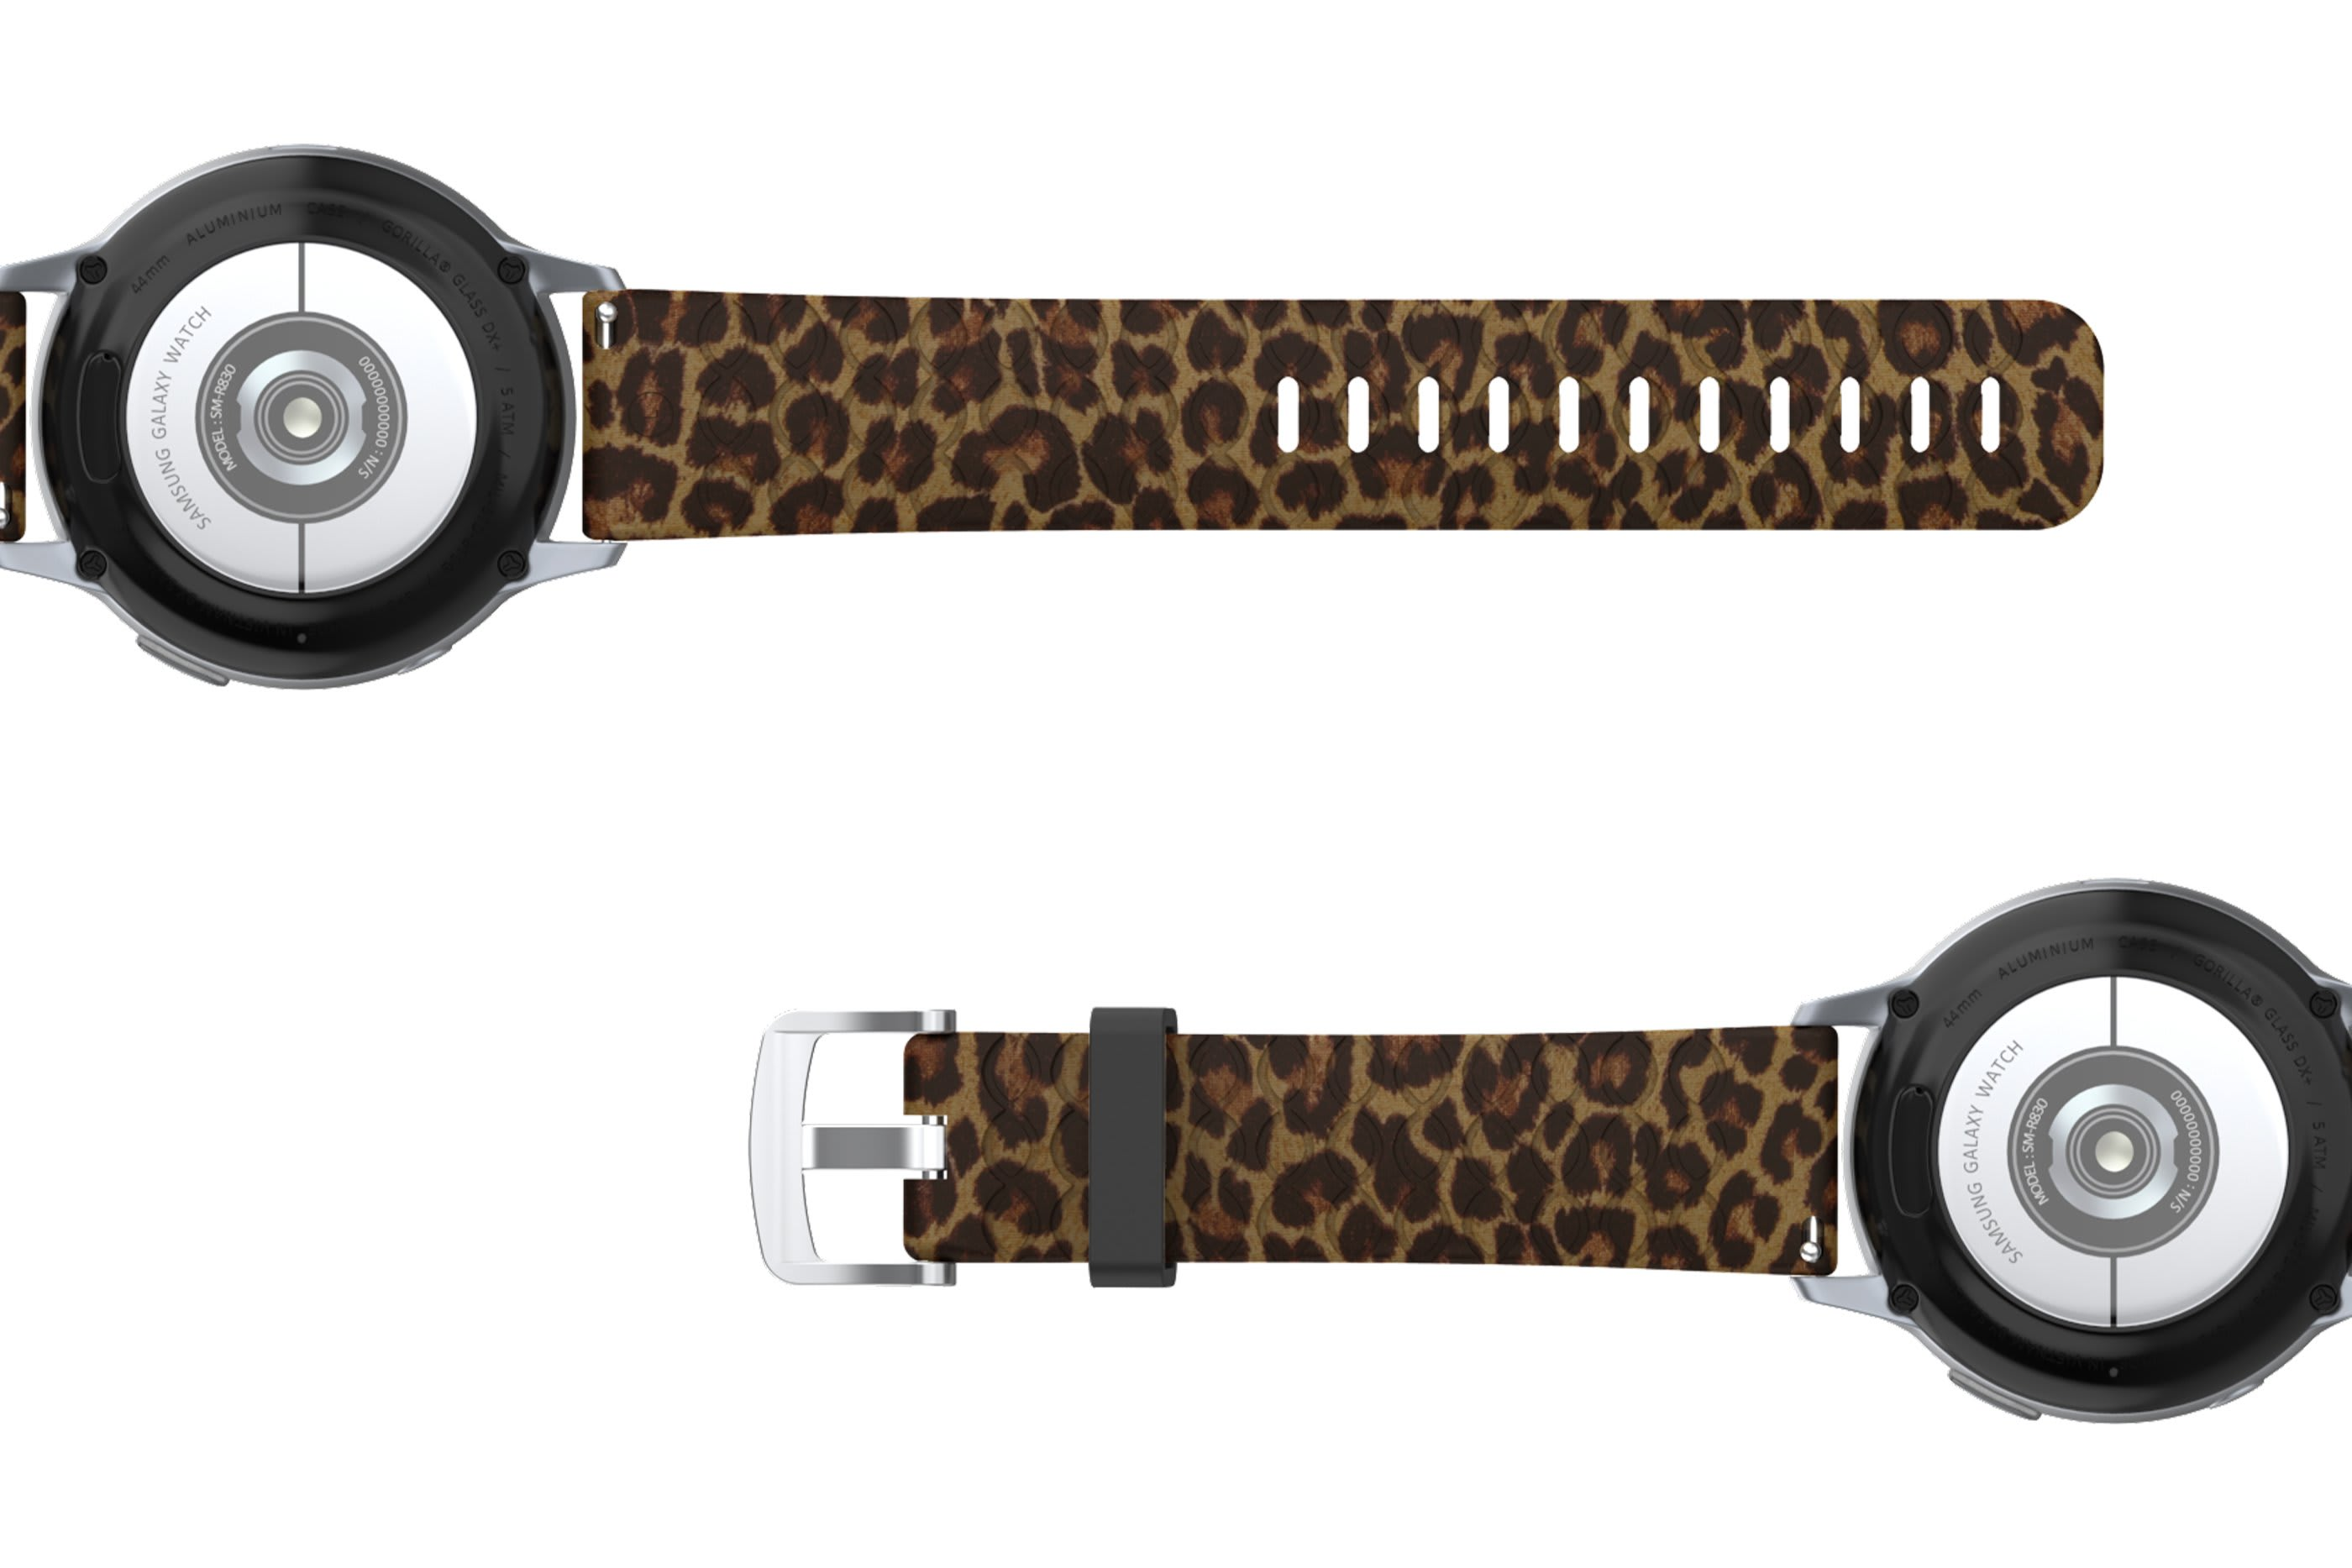 Leopard Samsung 22mm   watch band viewed bottom up